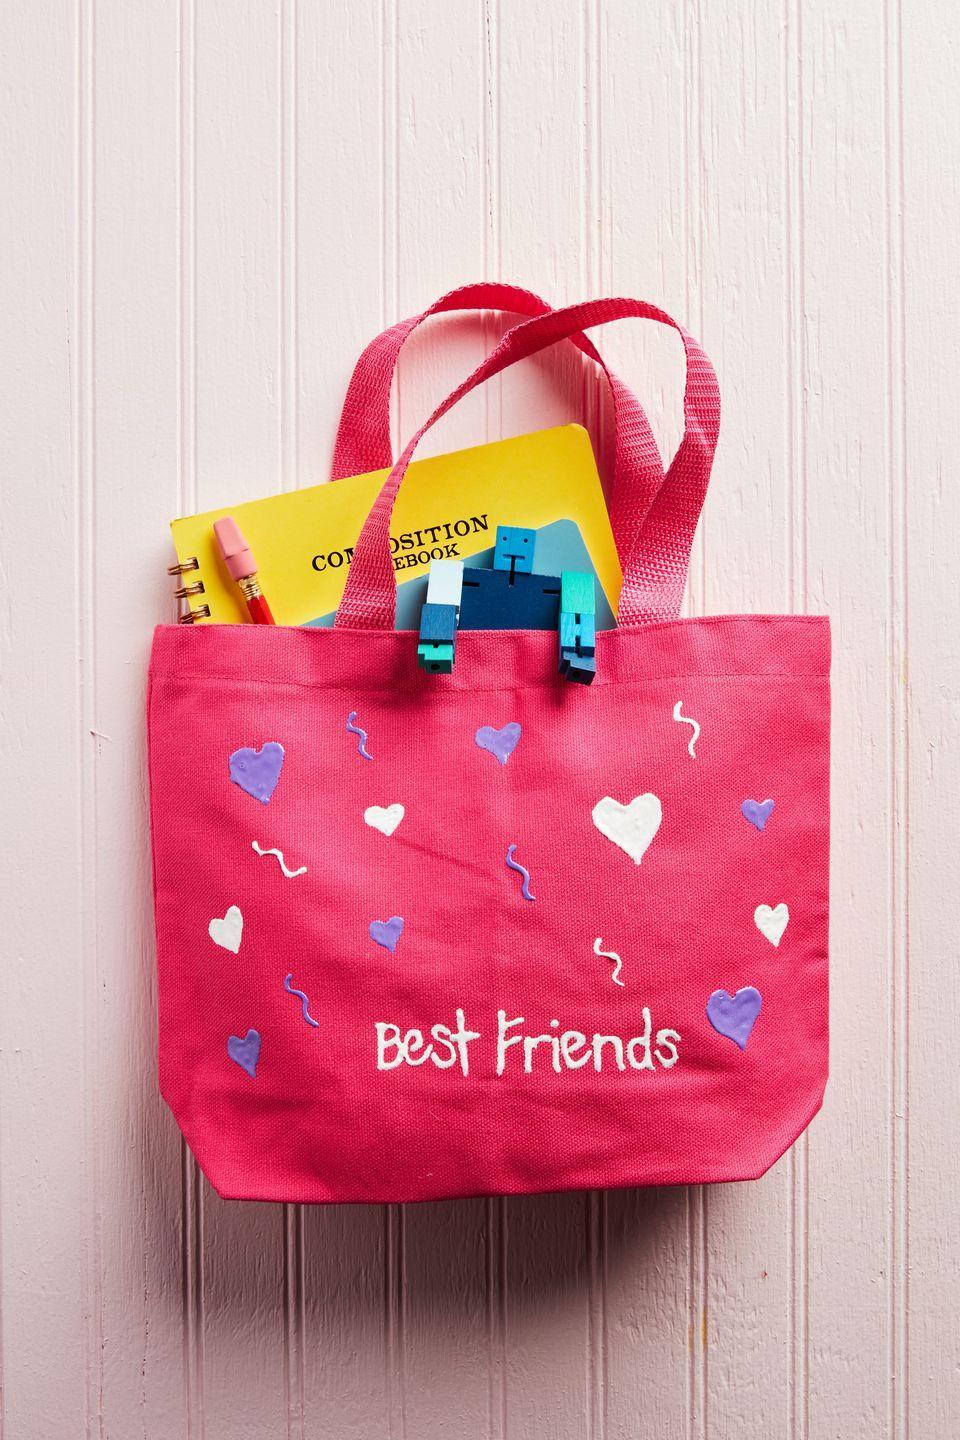 "<p>The little ones will love giving this tote to their dear friends on this February 14. <br></p><p><strong>To make: </strong>Use puff paint to draw designs and write a sweet note on a small tote bag. Allow to dry completely.</p><p><a class=""link rapid-noclick-resp"" href=""https://www.amazon.com/Castle-Art-Supplies-Fabric-Paint/dp/B07531MSVC/ref=sr_1_2_sspa?tag=syn-yahoo-20&ascsubtag=%5Bartid%7C10050.g.1584%5Bsrc%7Cyahoo-us"" rel=""nofollow noopener"" target=""_blank"" data-ylk=""slk:SHOP PUFF PAINT"">SHOP PUFF PAINT</a></p>"